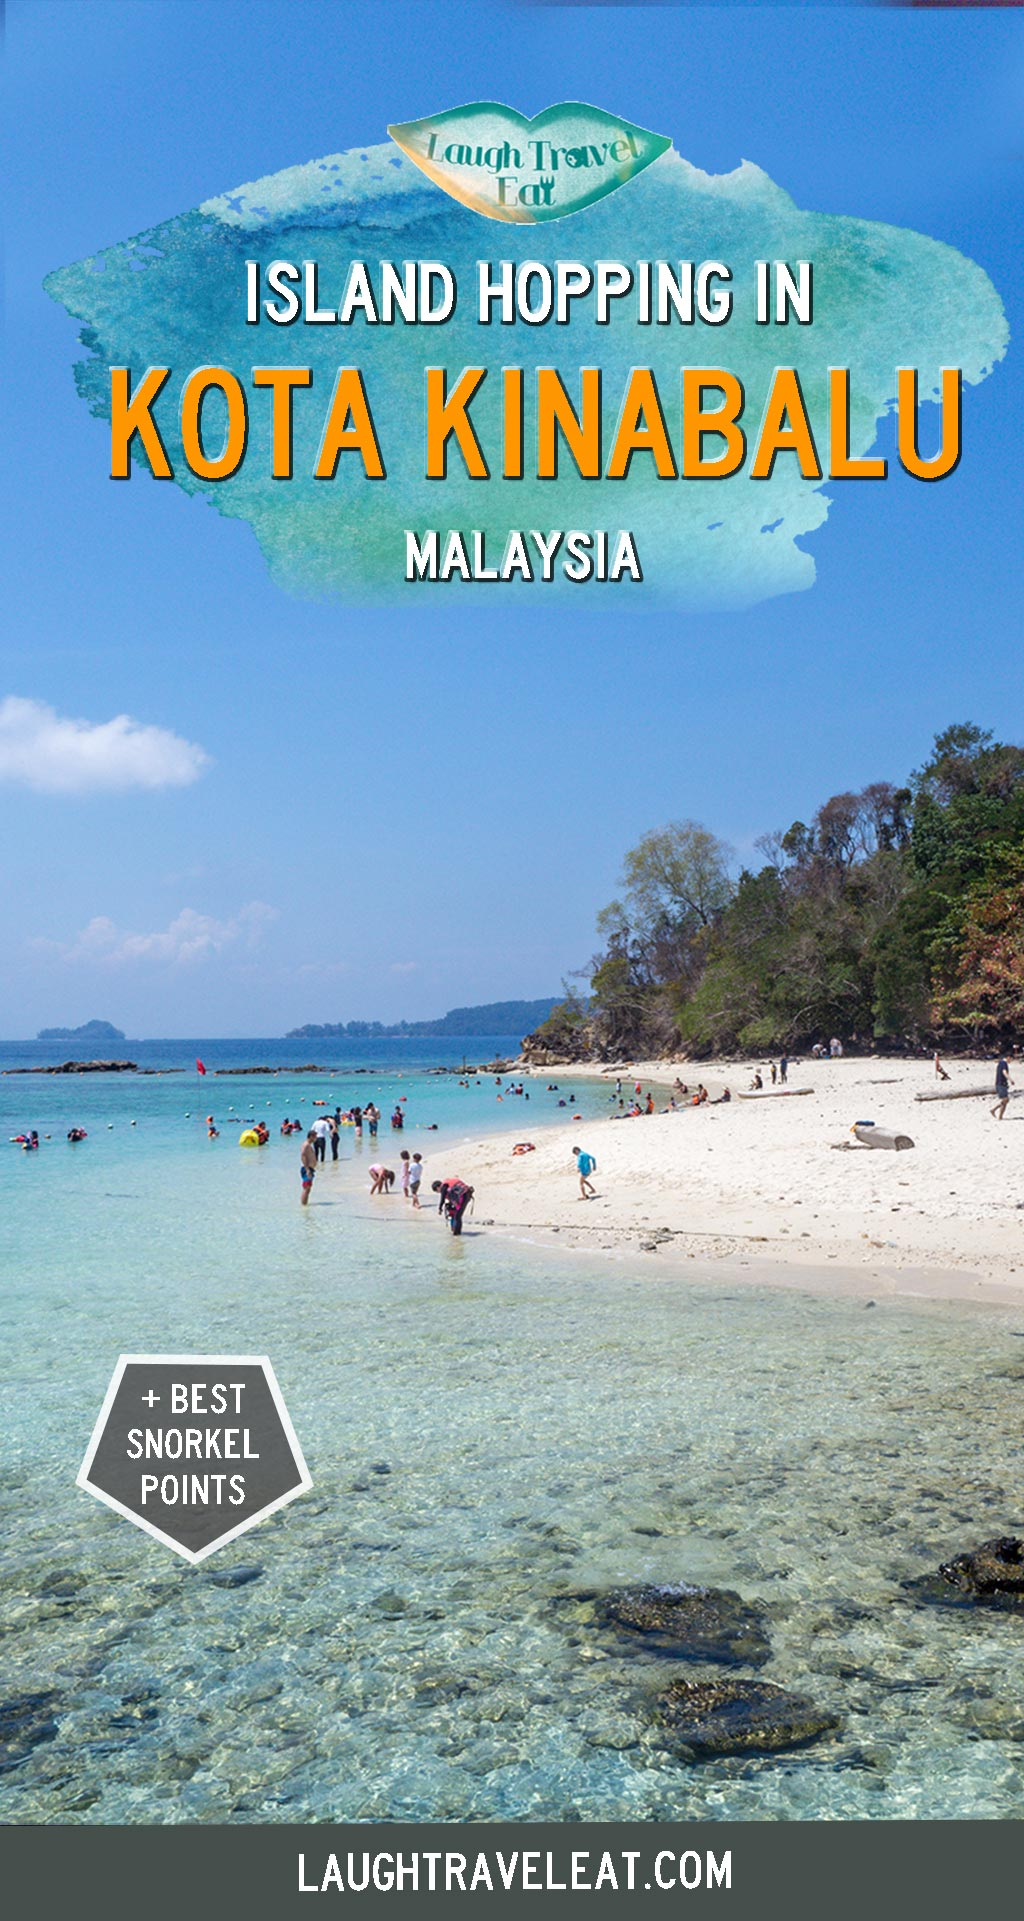 Kota Kinabalu is home to many beautiful islands and beaches, in particular those in Tunku Abdul Rahman National Park. Depending on whether you have enough time, here are the two main ways to enjoy the beaches in Kota Kinabalu: #KotaKinabalu #Sabah #Malaysia